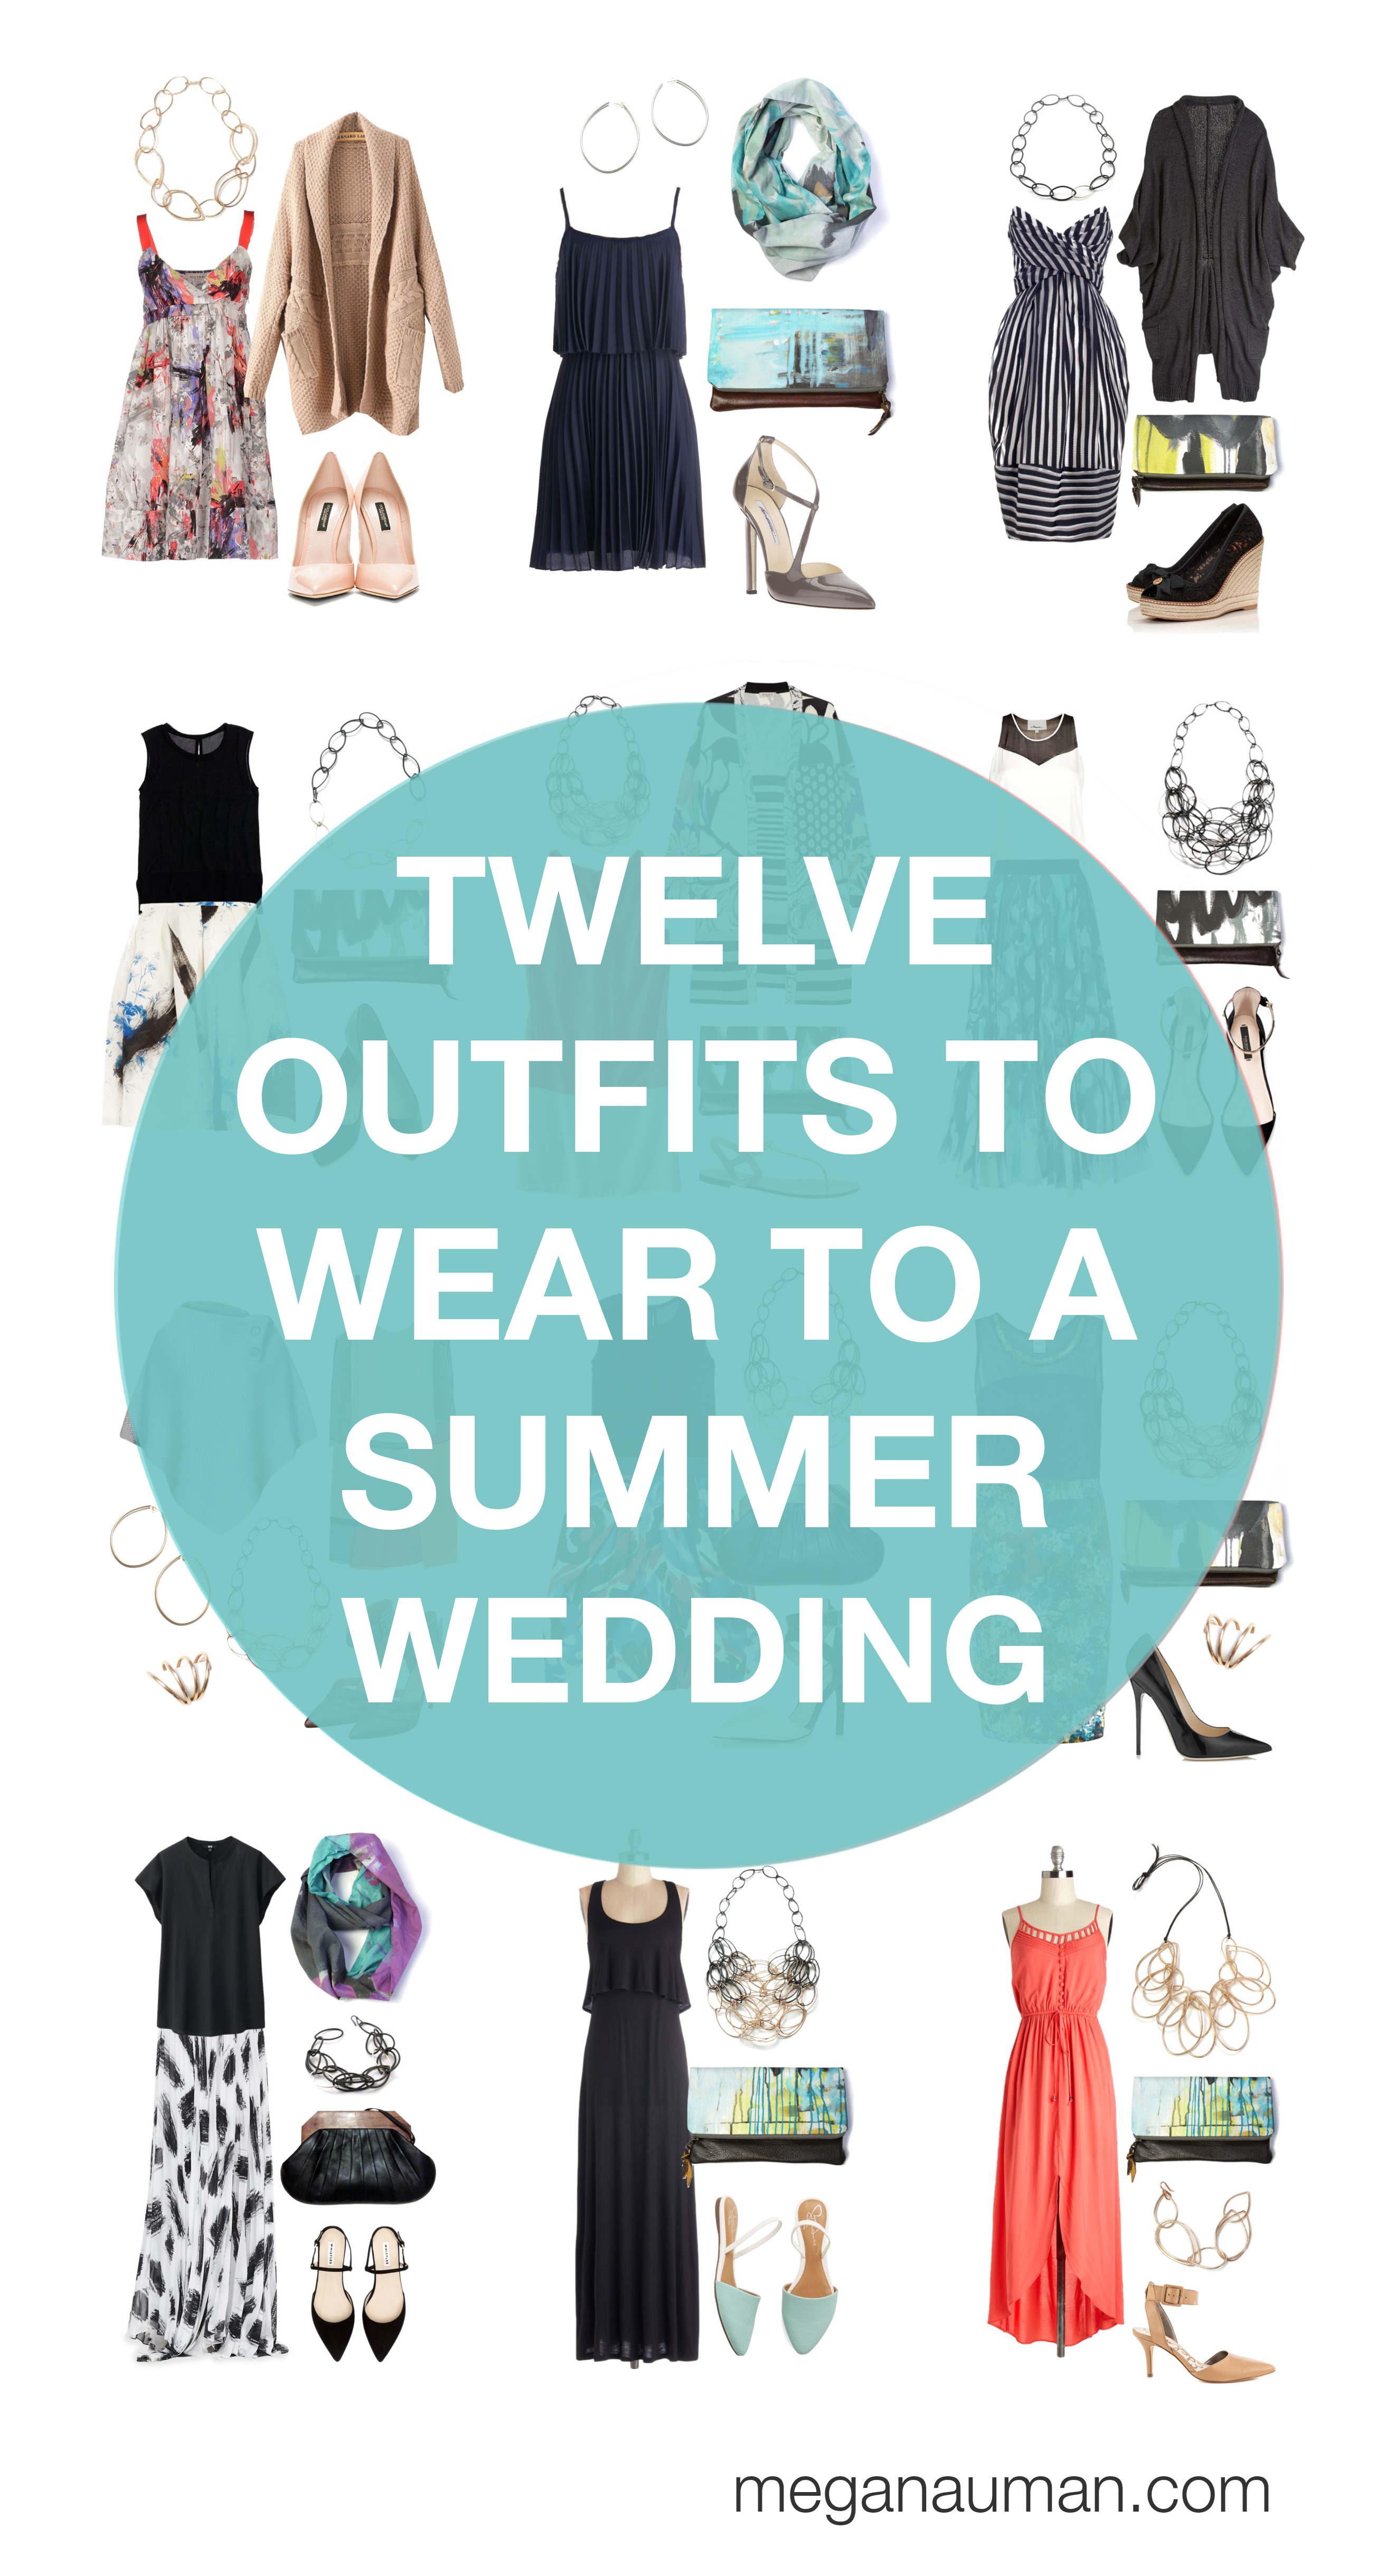 what to wear to a summer wedding: 12 outfit ideas to try - MEGAN AUMAN